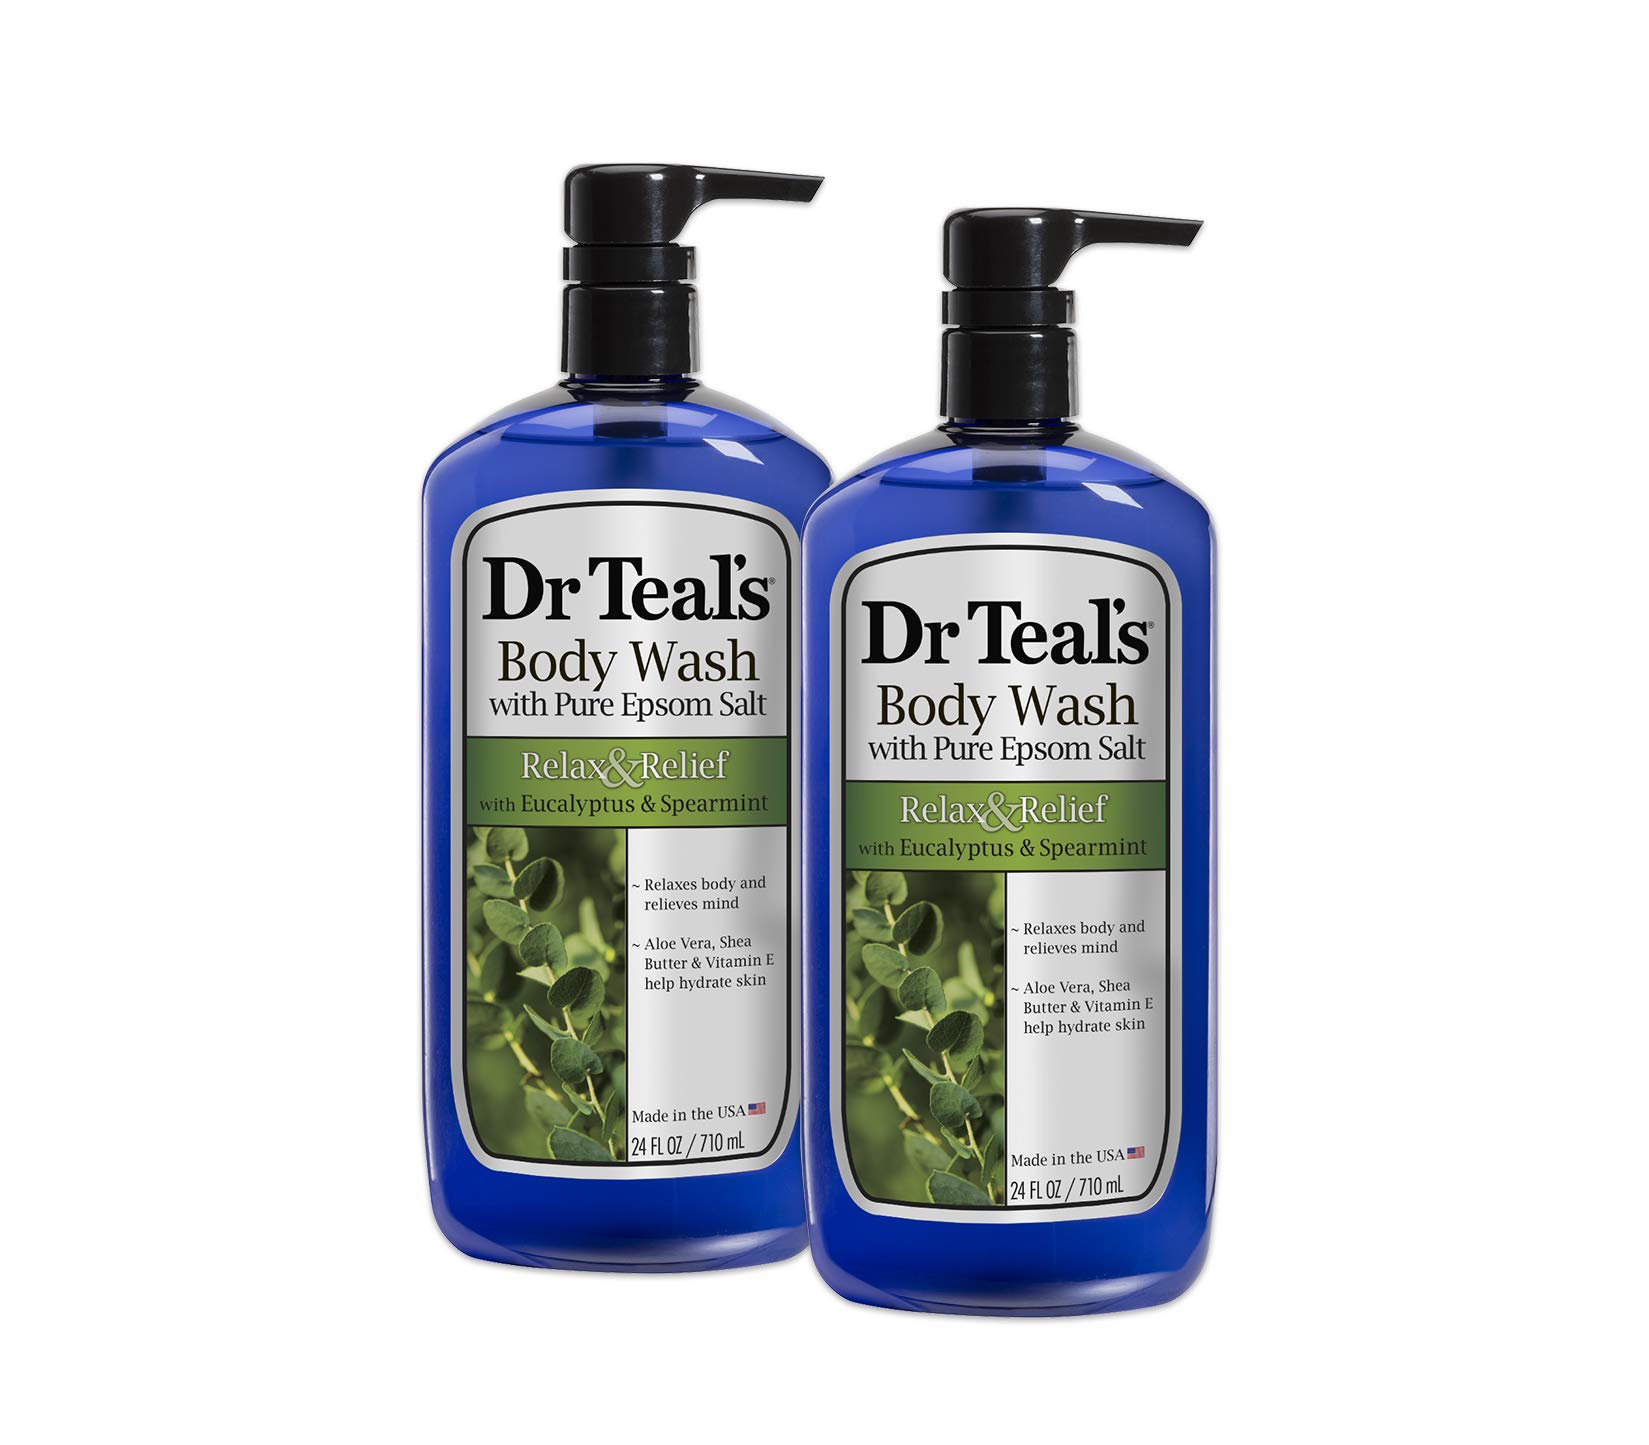 Dr Teal's Body Wash, Relax & Relief with Eucalyptus & Spearmint 24 fl oz (Pack of 2)